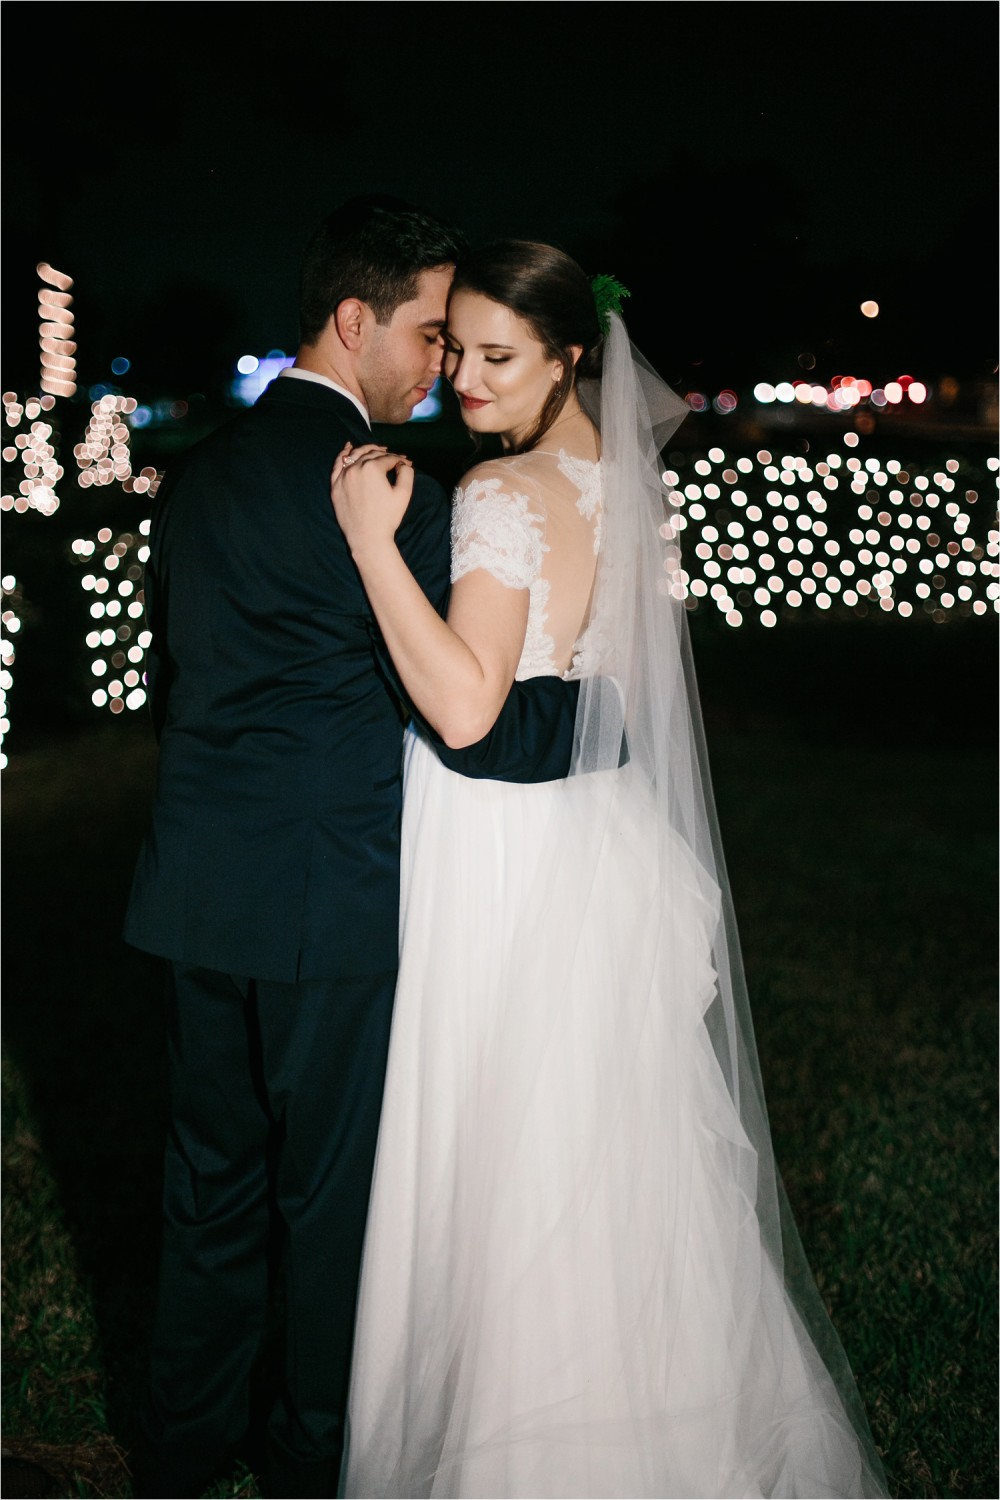 Alaina + Josh __ a wintertime wedding in Houston, TX with Christmas accents and a BHLDN dress by North Texas Wedding Photographer Rachel Meagan Photography _ 55